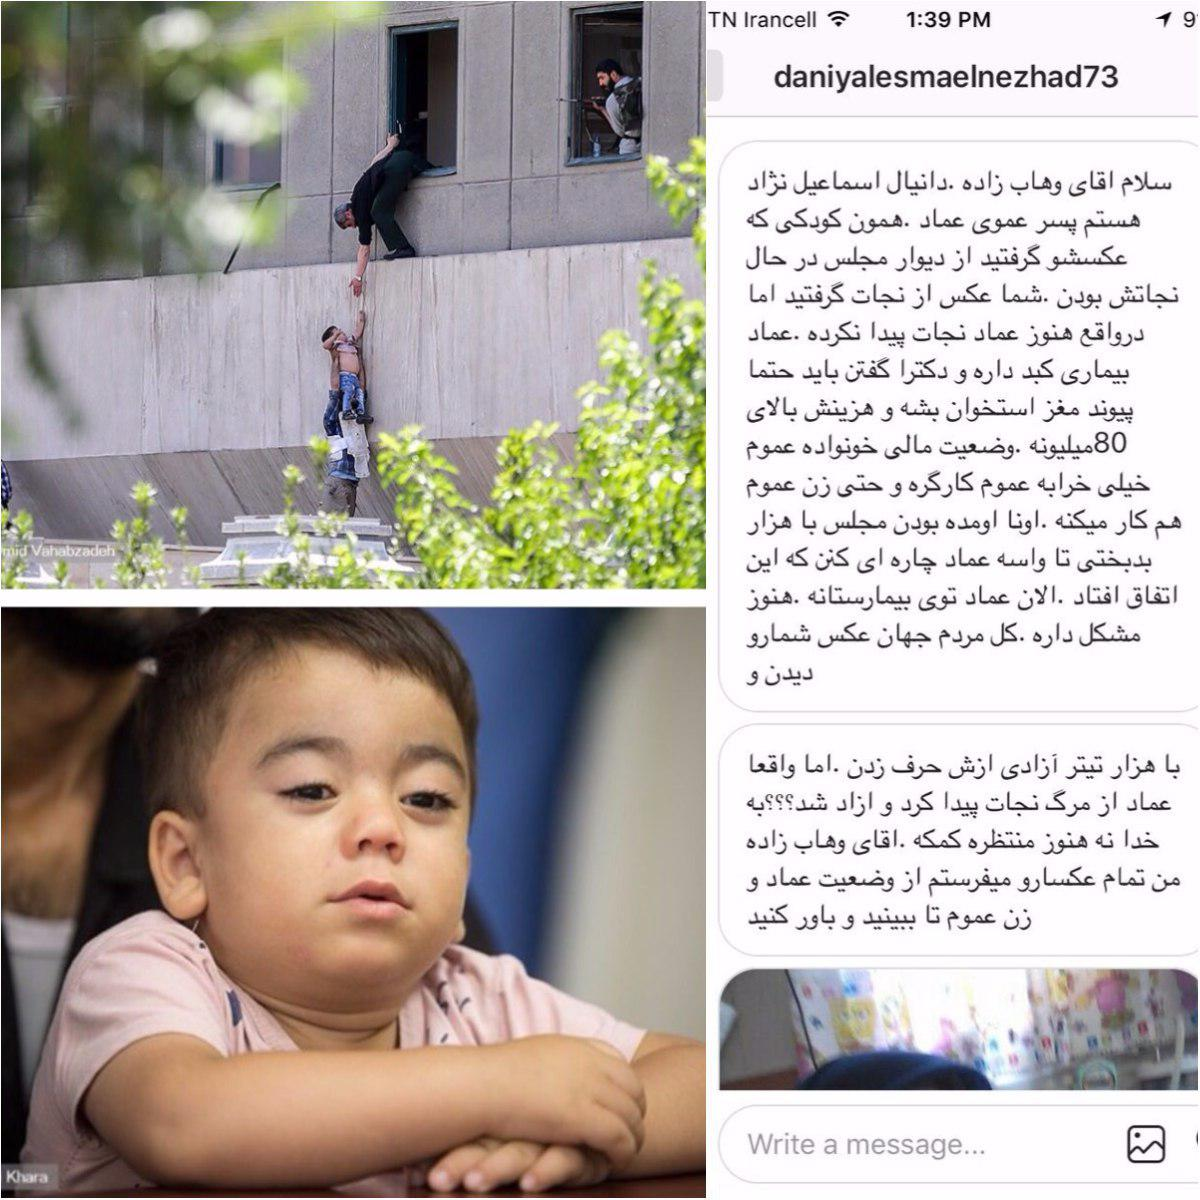 Free Treatment for Child Whose Photo Went Viral after Tehran Attacks -emad